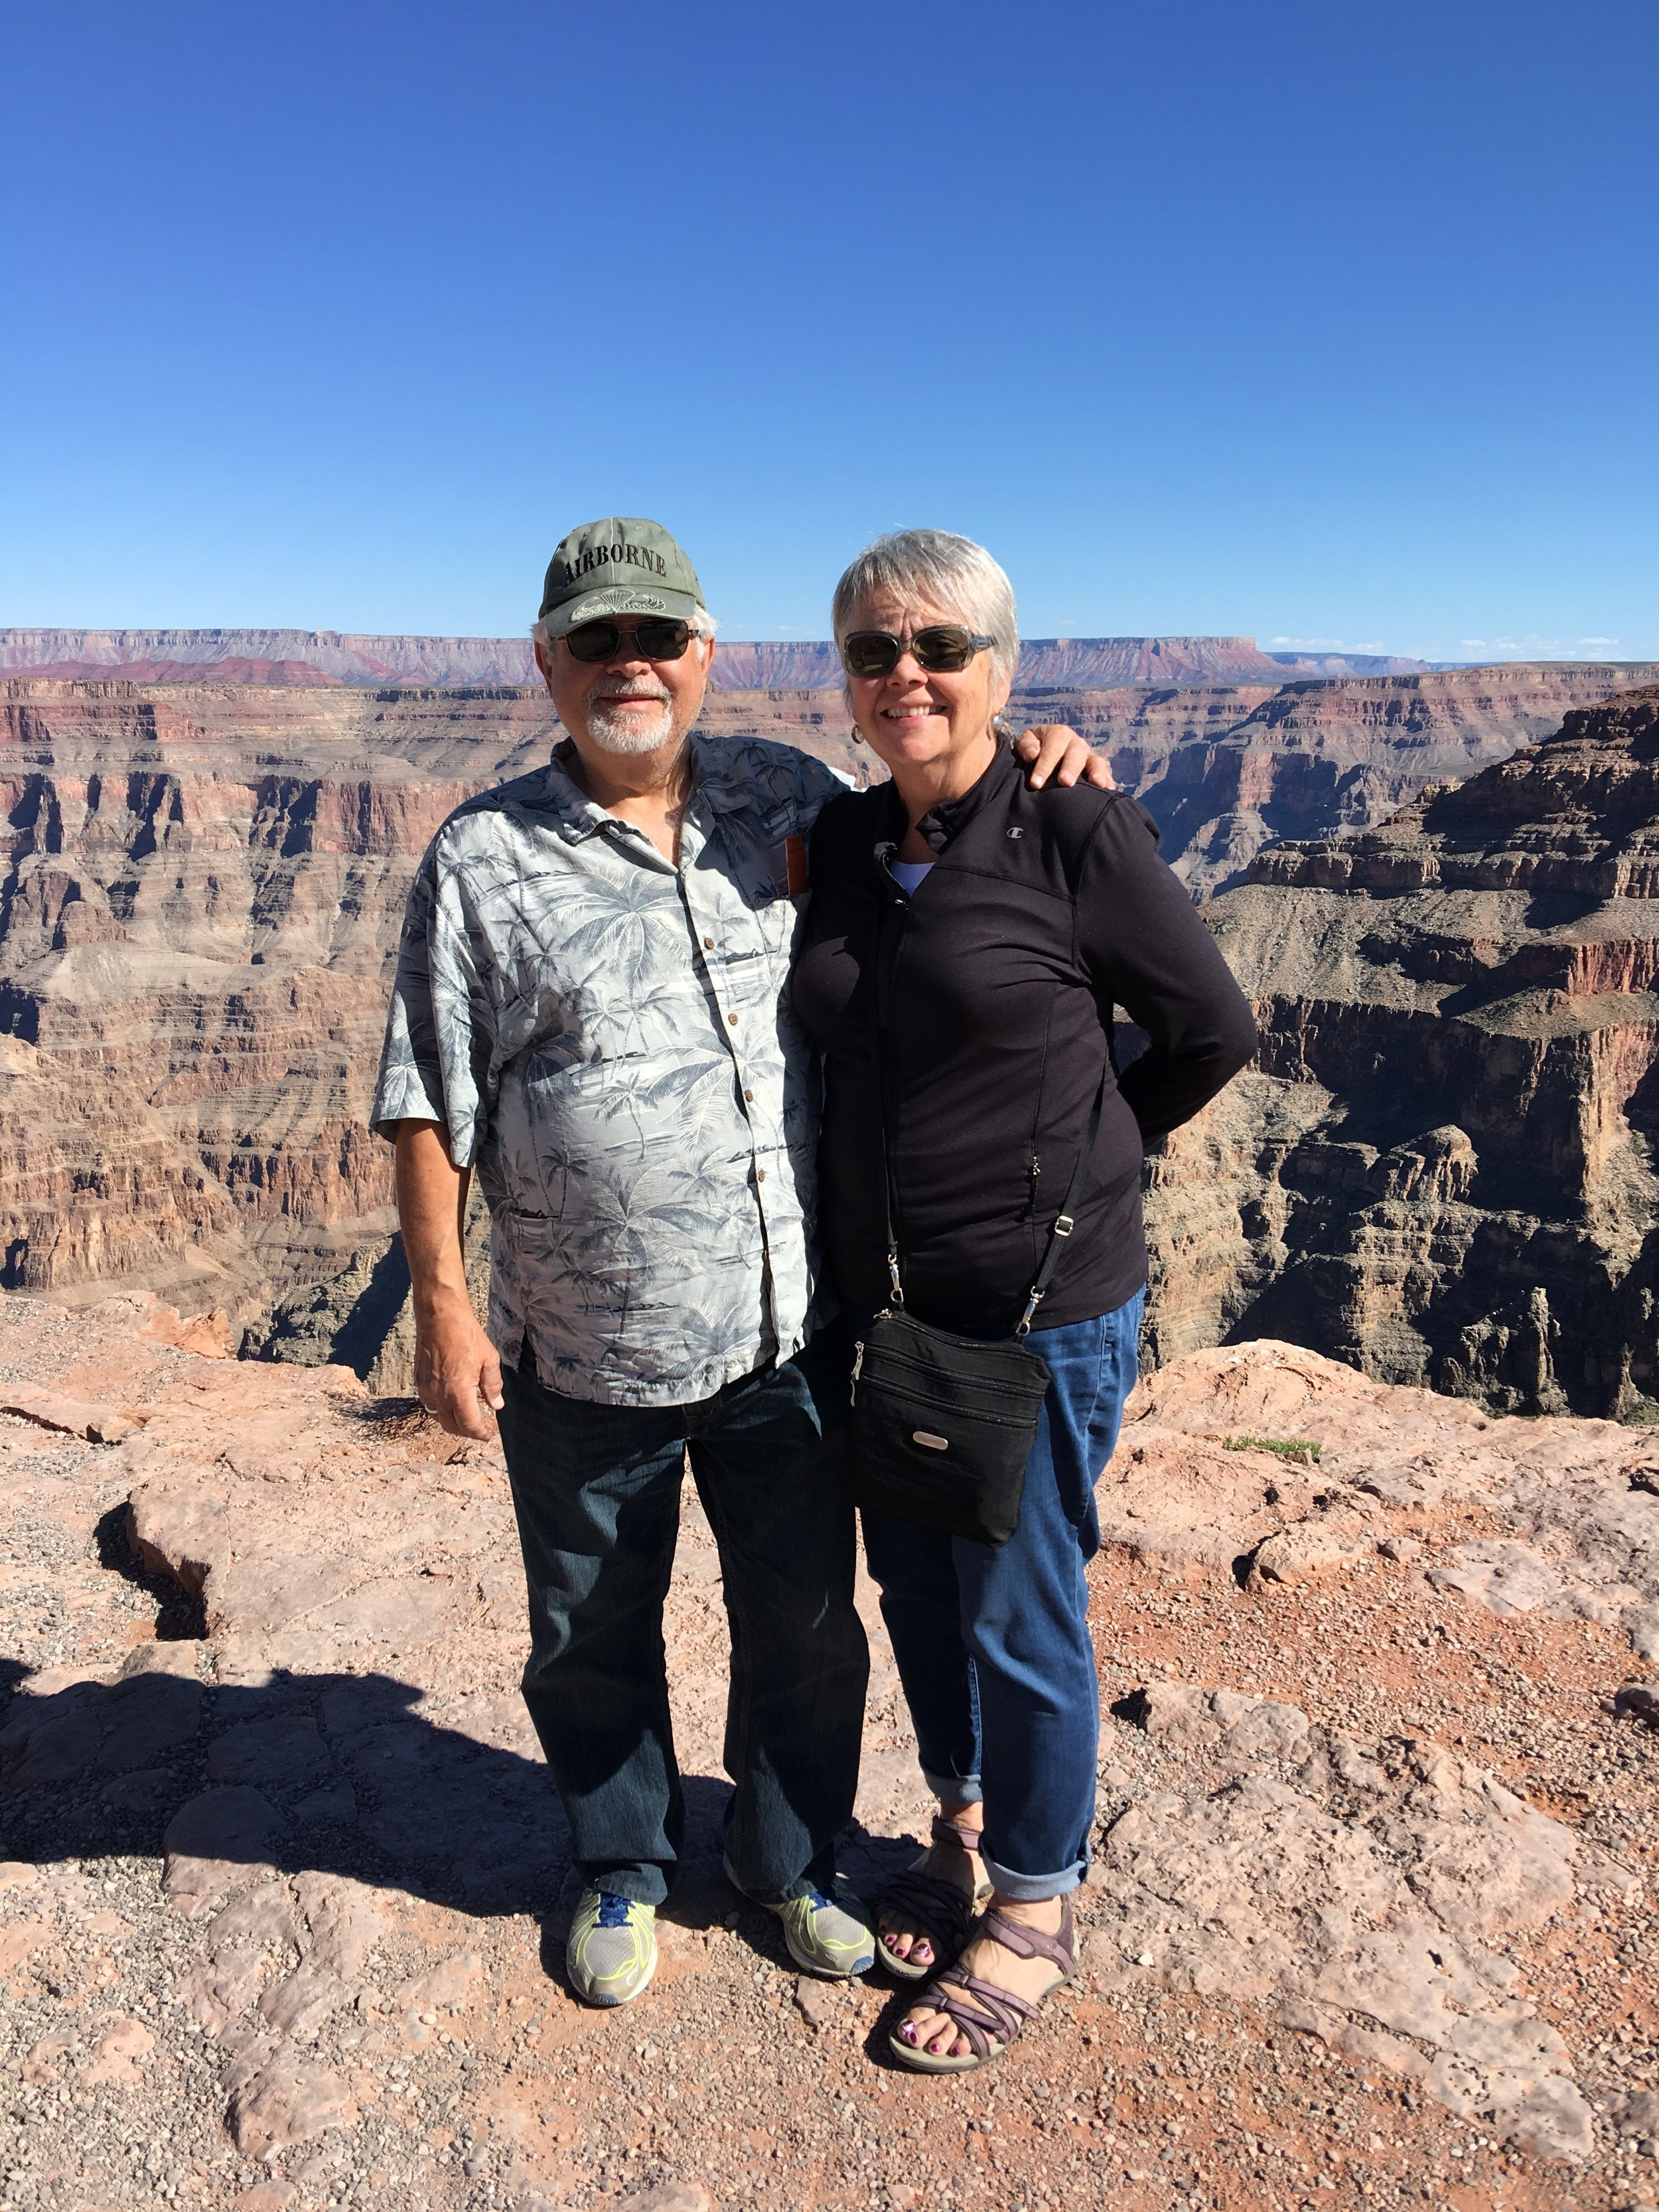 Tourists at the Grand Canyon